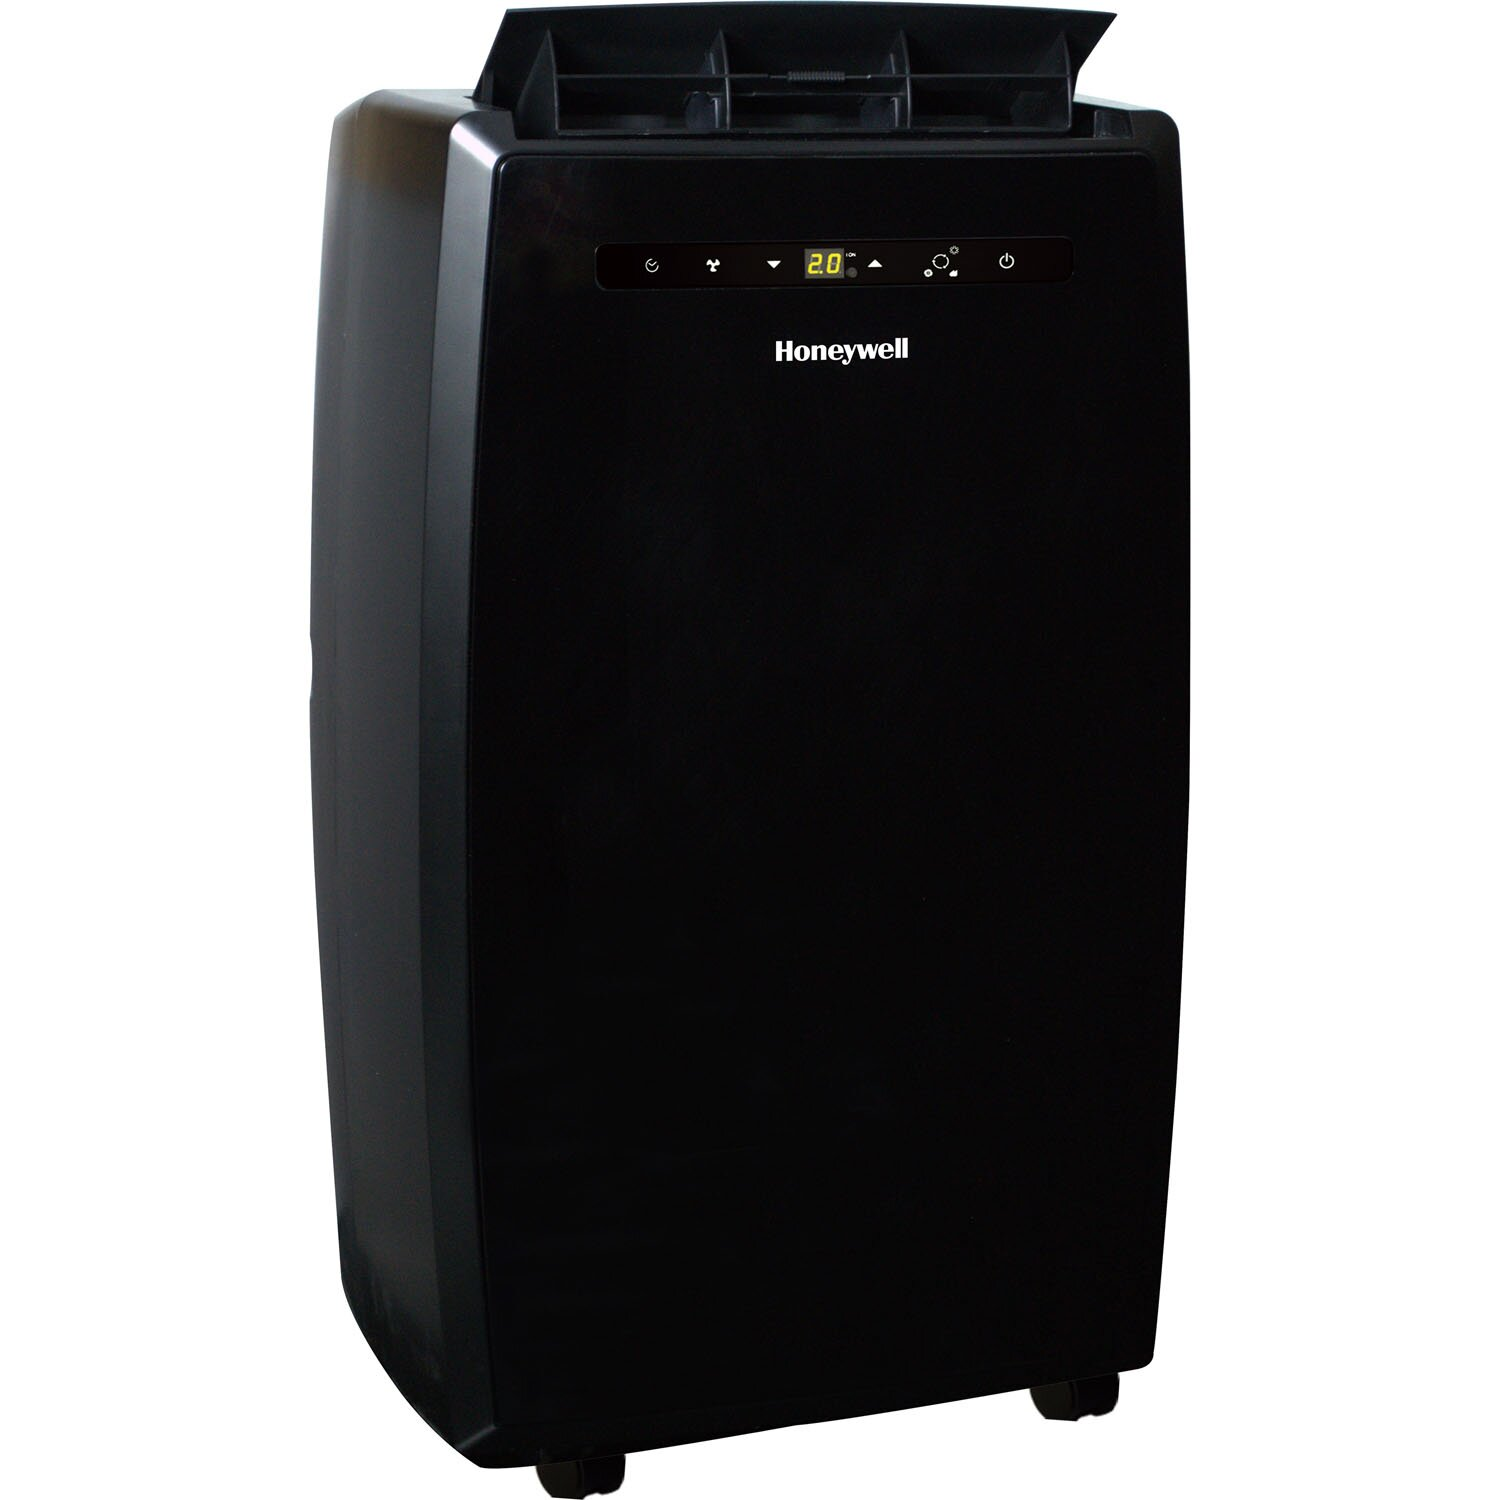 Honeywell 12 000 Btu Portable Air Conditioner With Remote